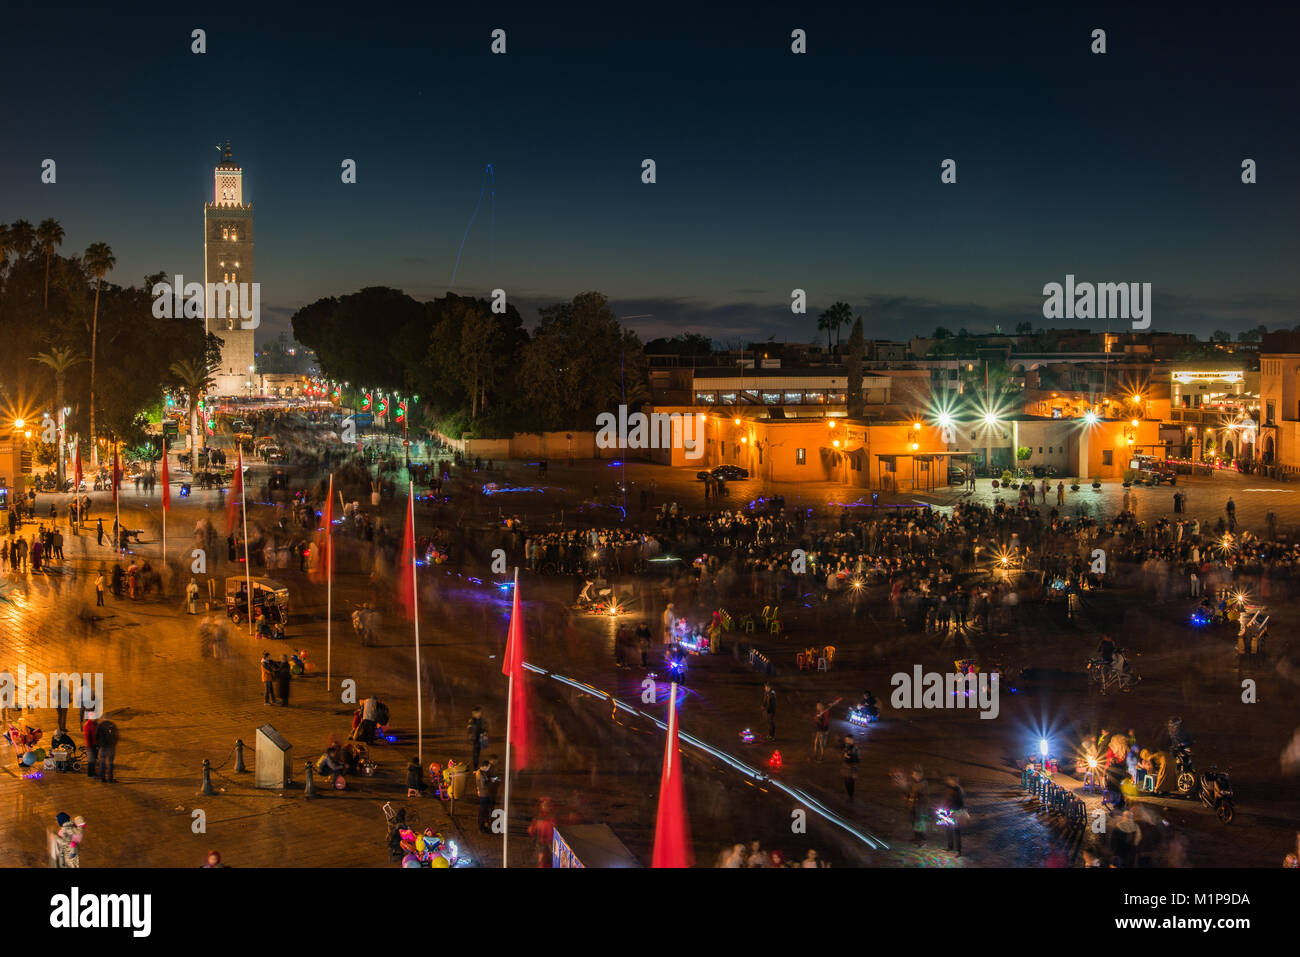 Marrakech,Morocco - January 2018: Aerial view over Jamaa el Fna market square at evening. Stock Photo